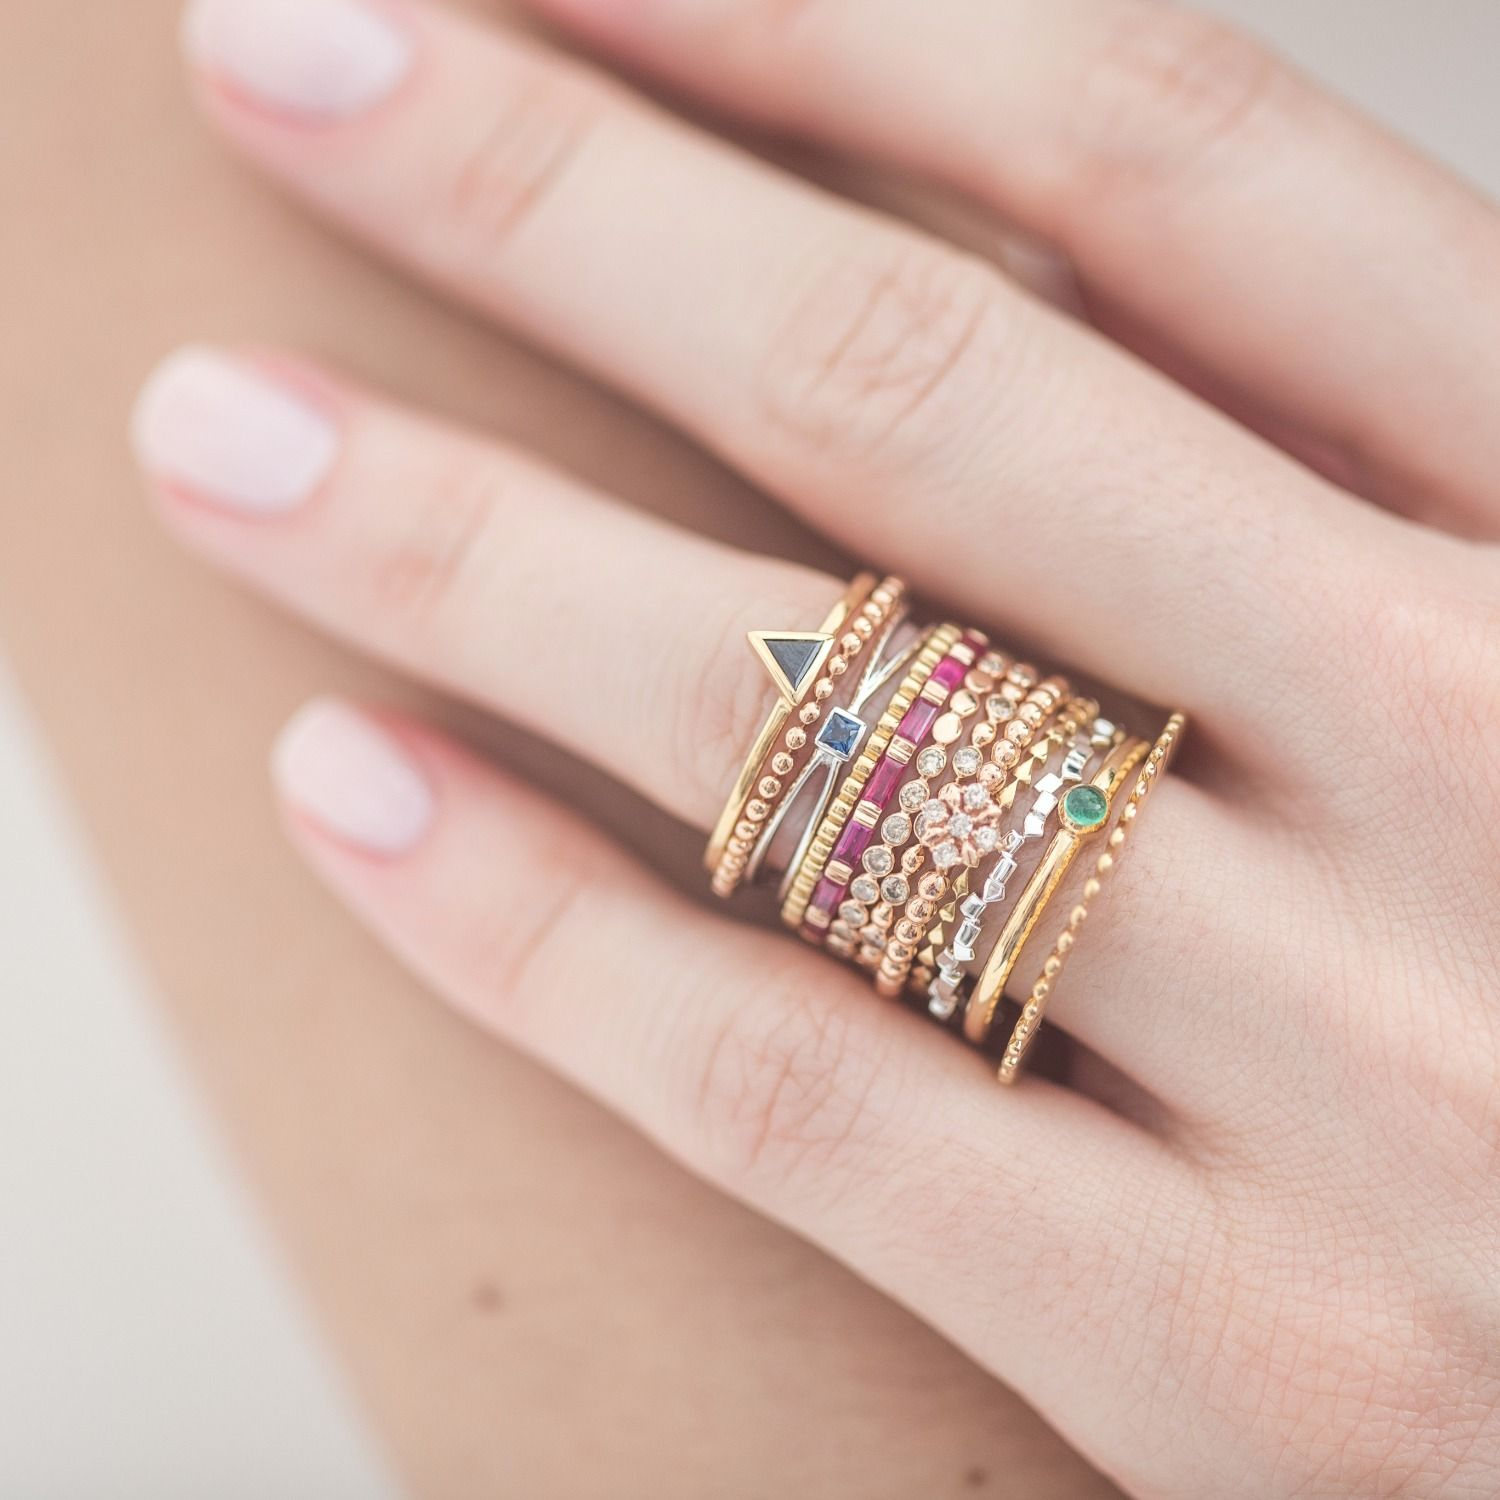 The Calendar Mix Box Ring | Box, Ring and Jewel